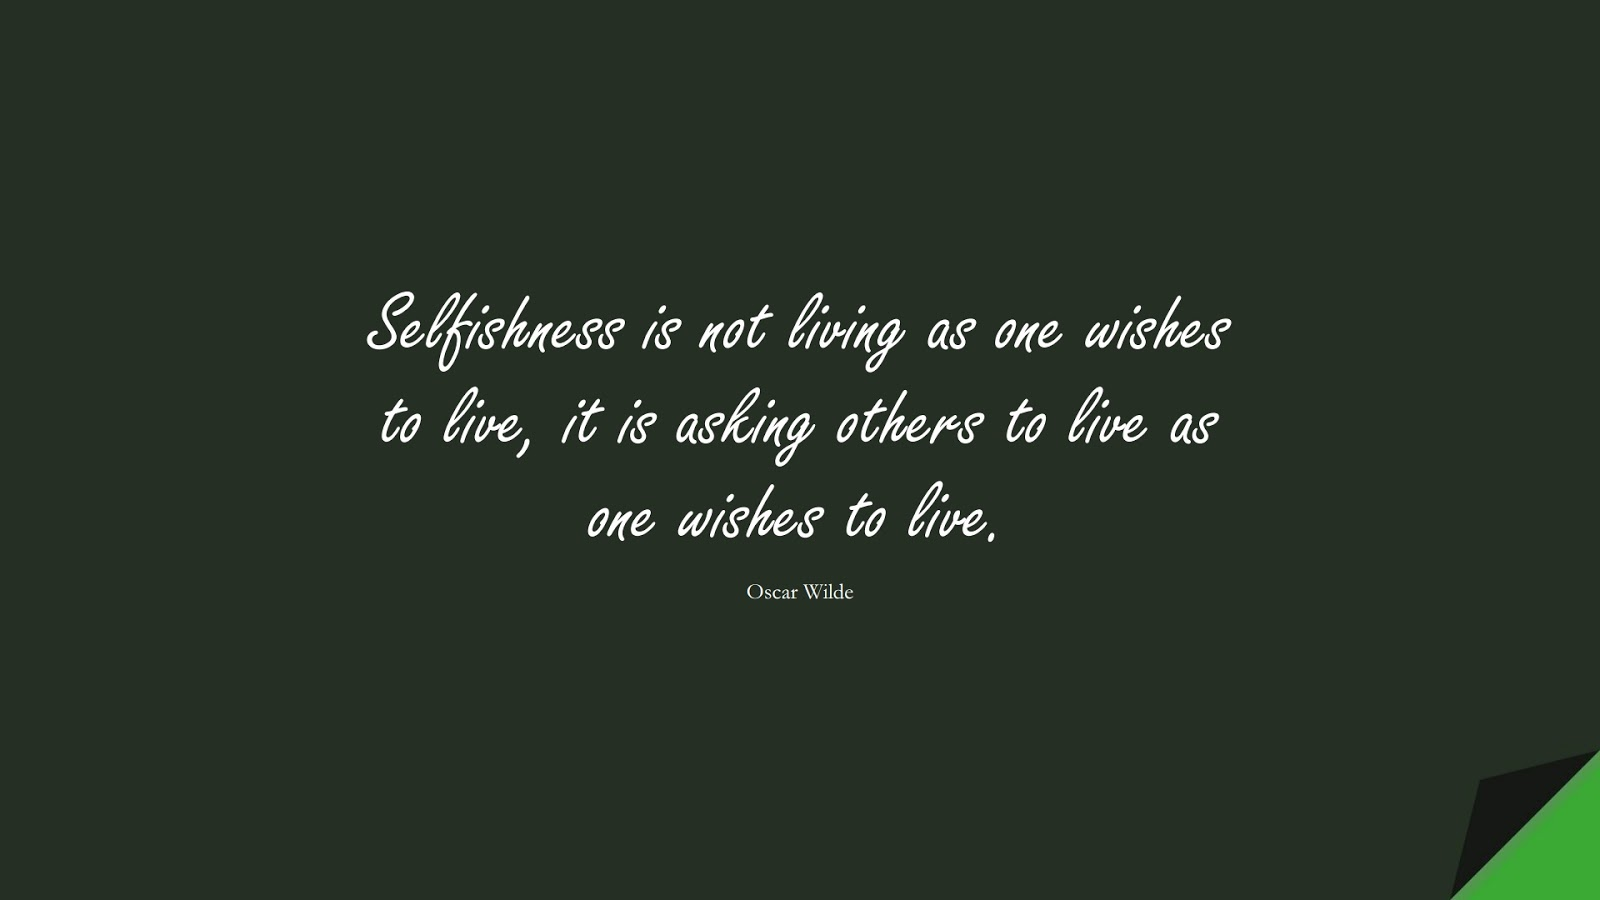 Selfishness is not living as one wishes to live, it is asking others to live as one wishes to live. (Oscar Wilde);  #LoveYourselfQuotes